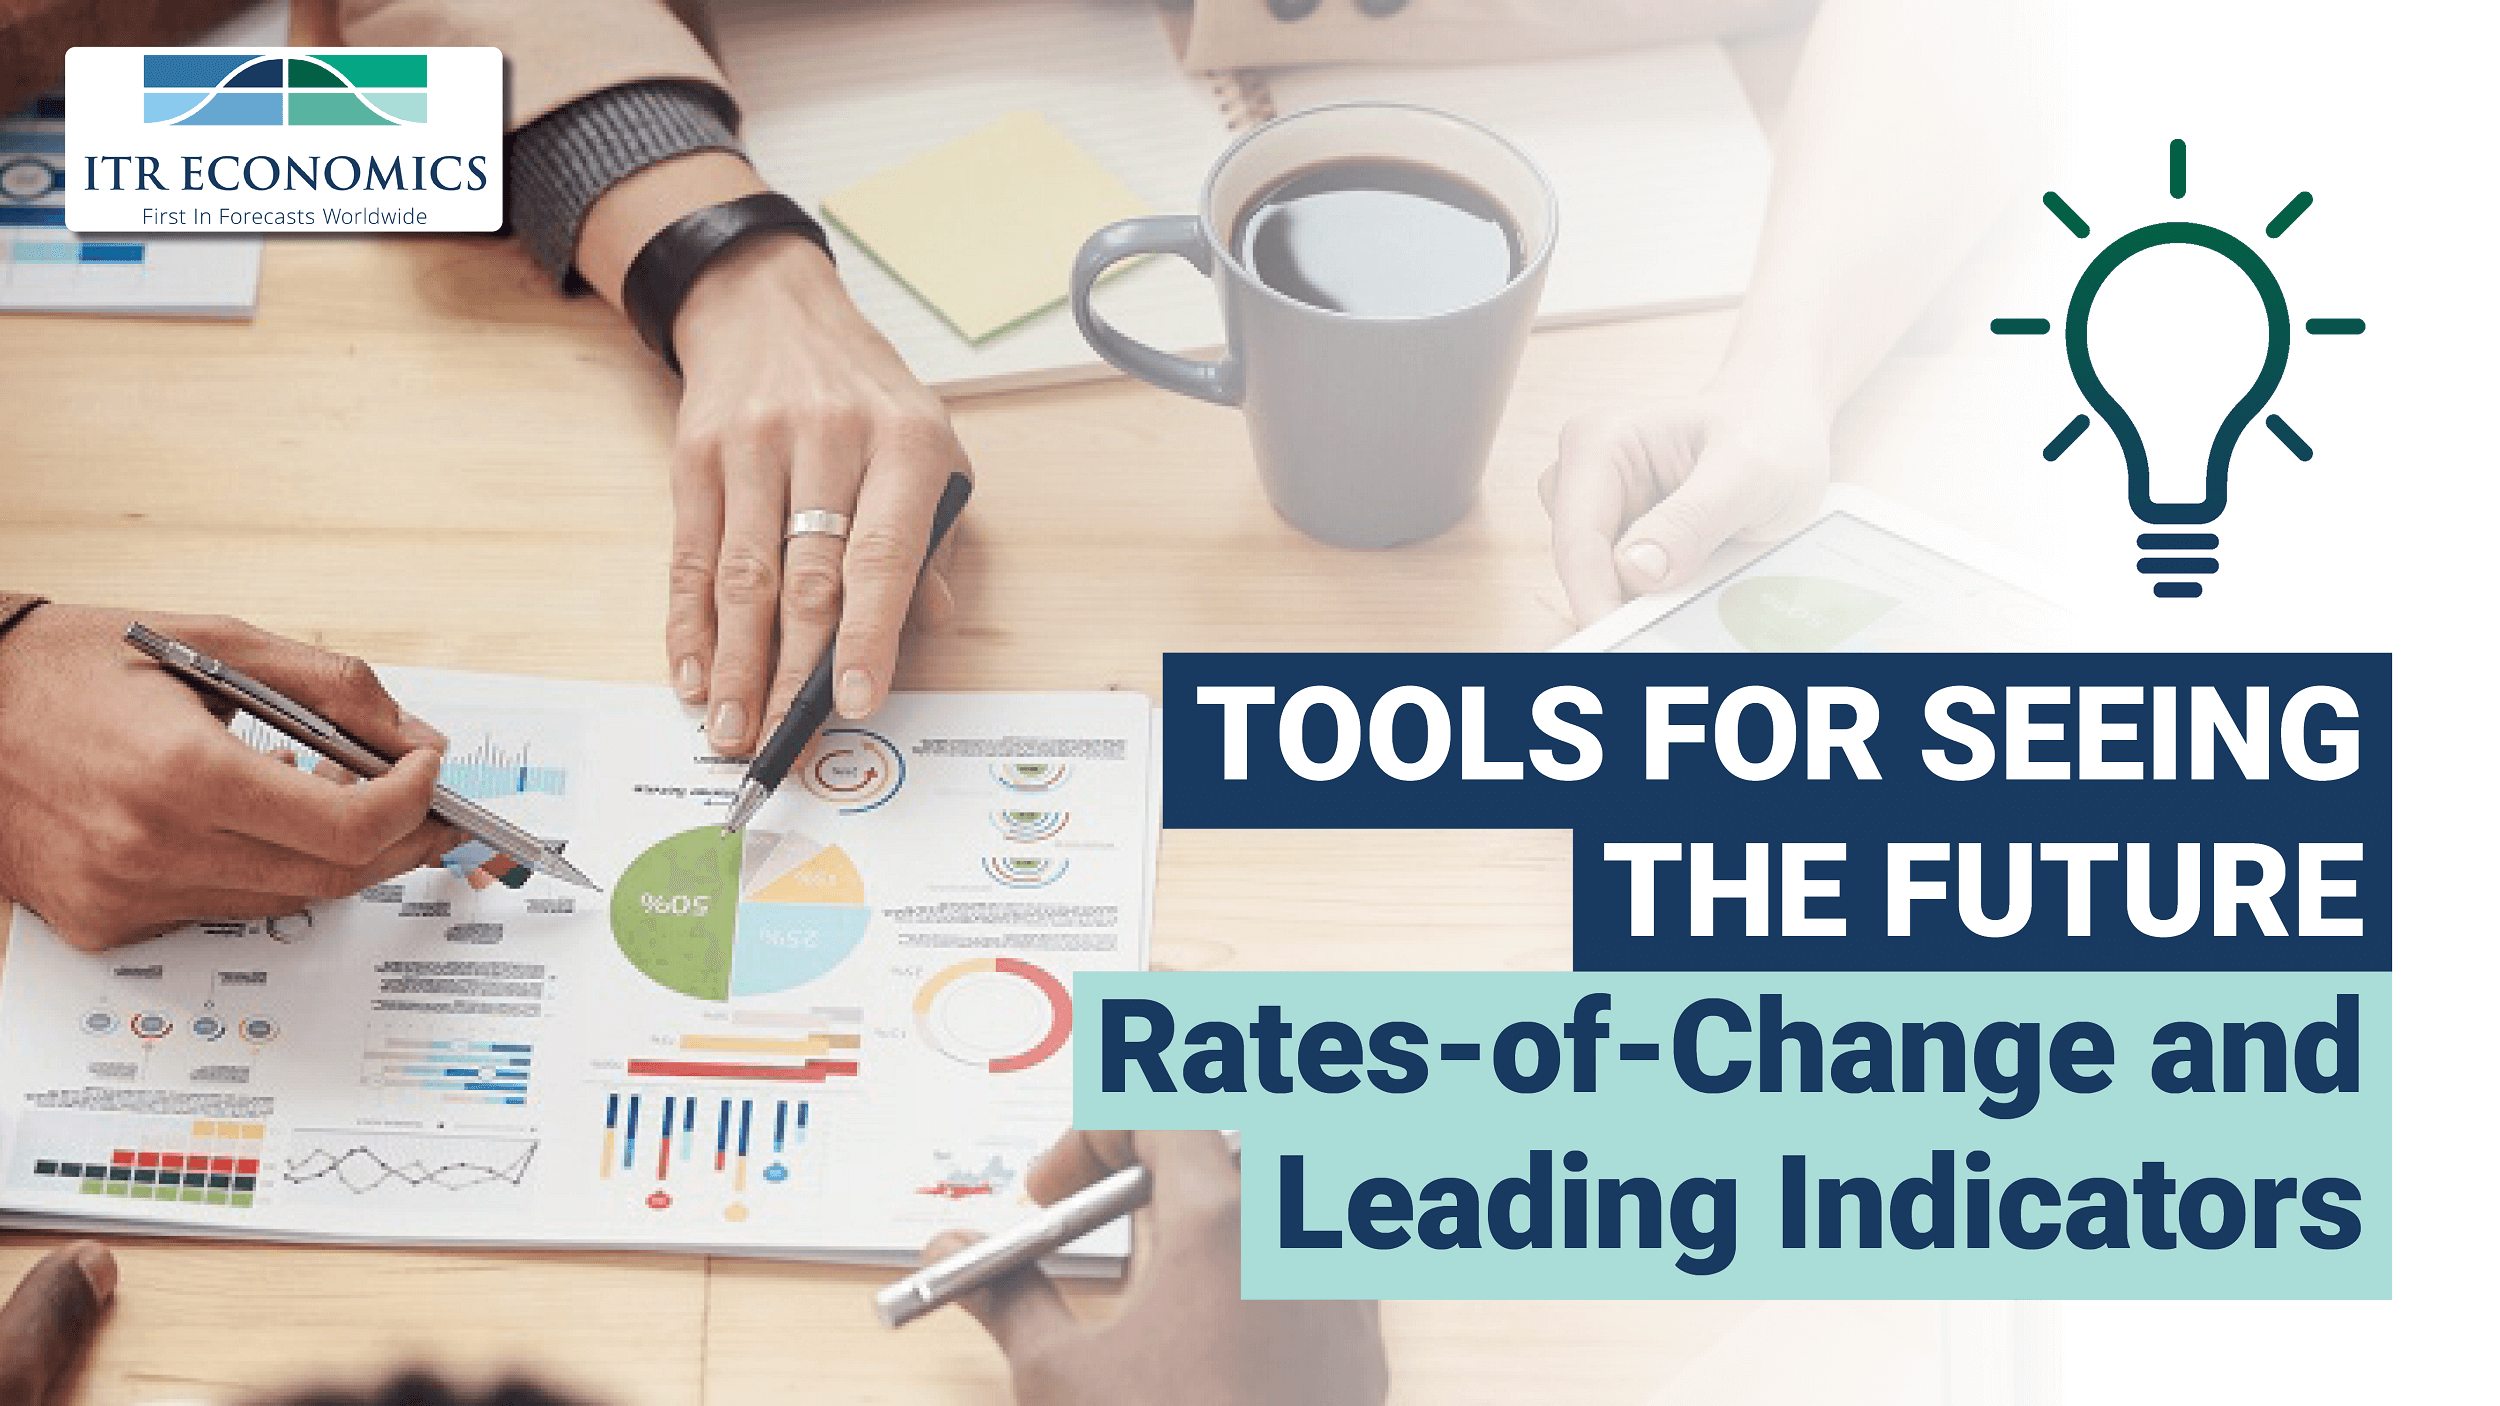 Leading Indicators - Tools for Seeing the Future